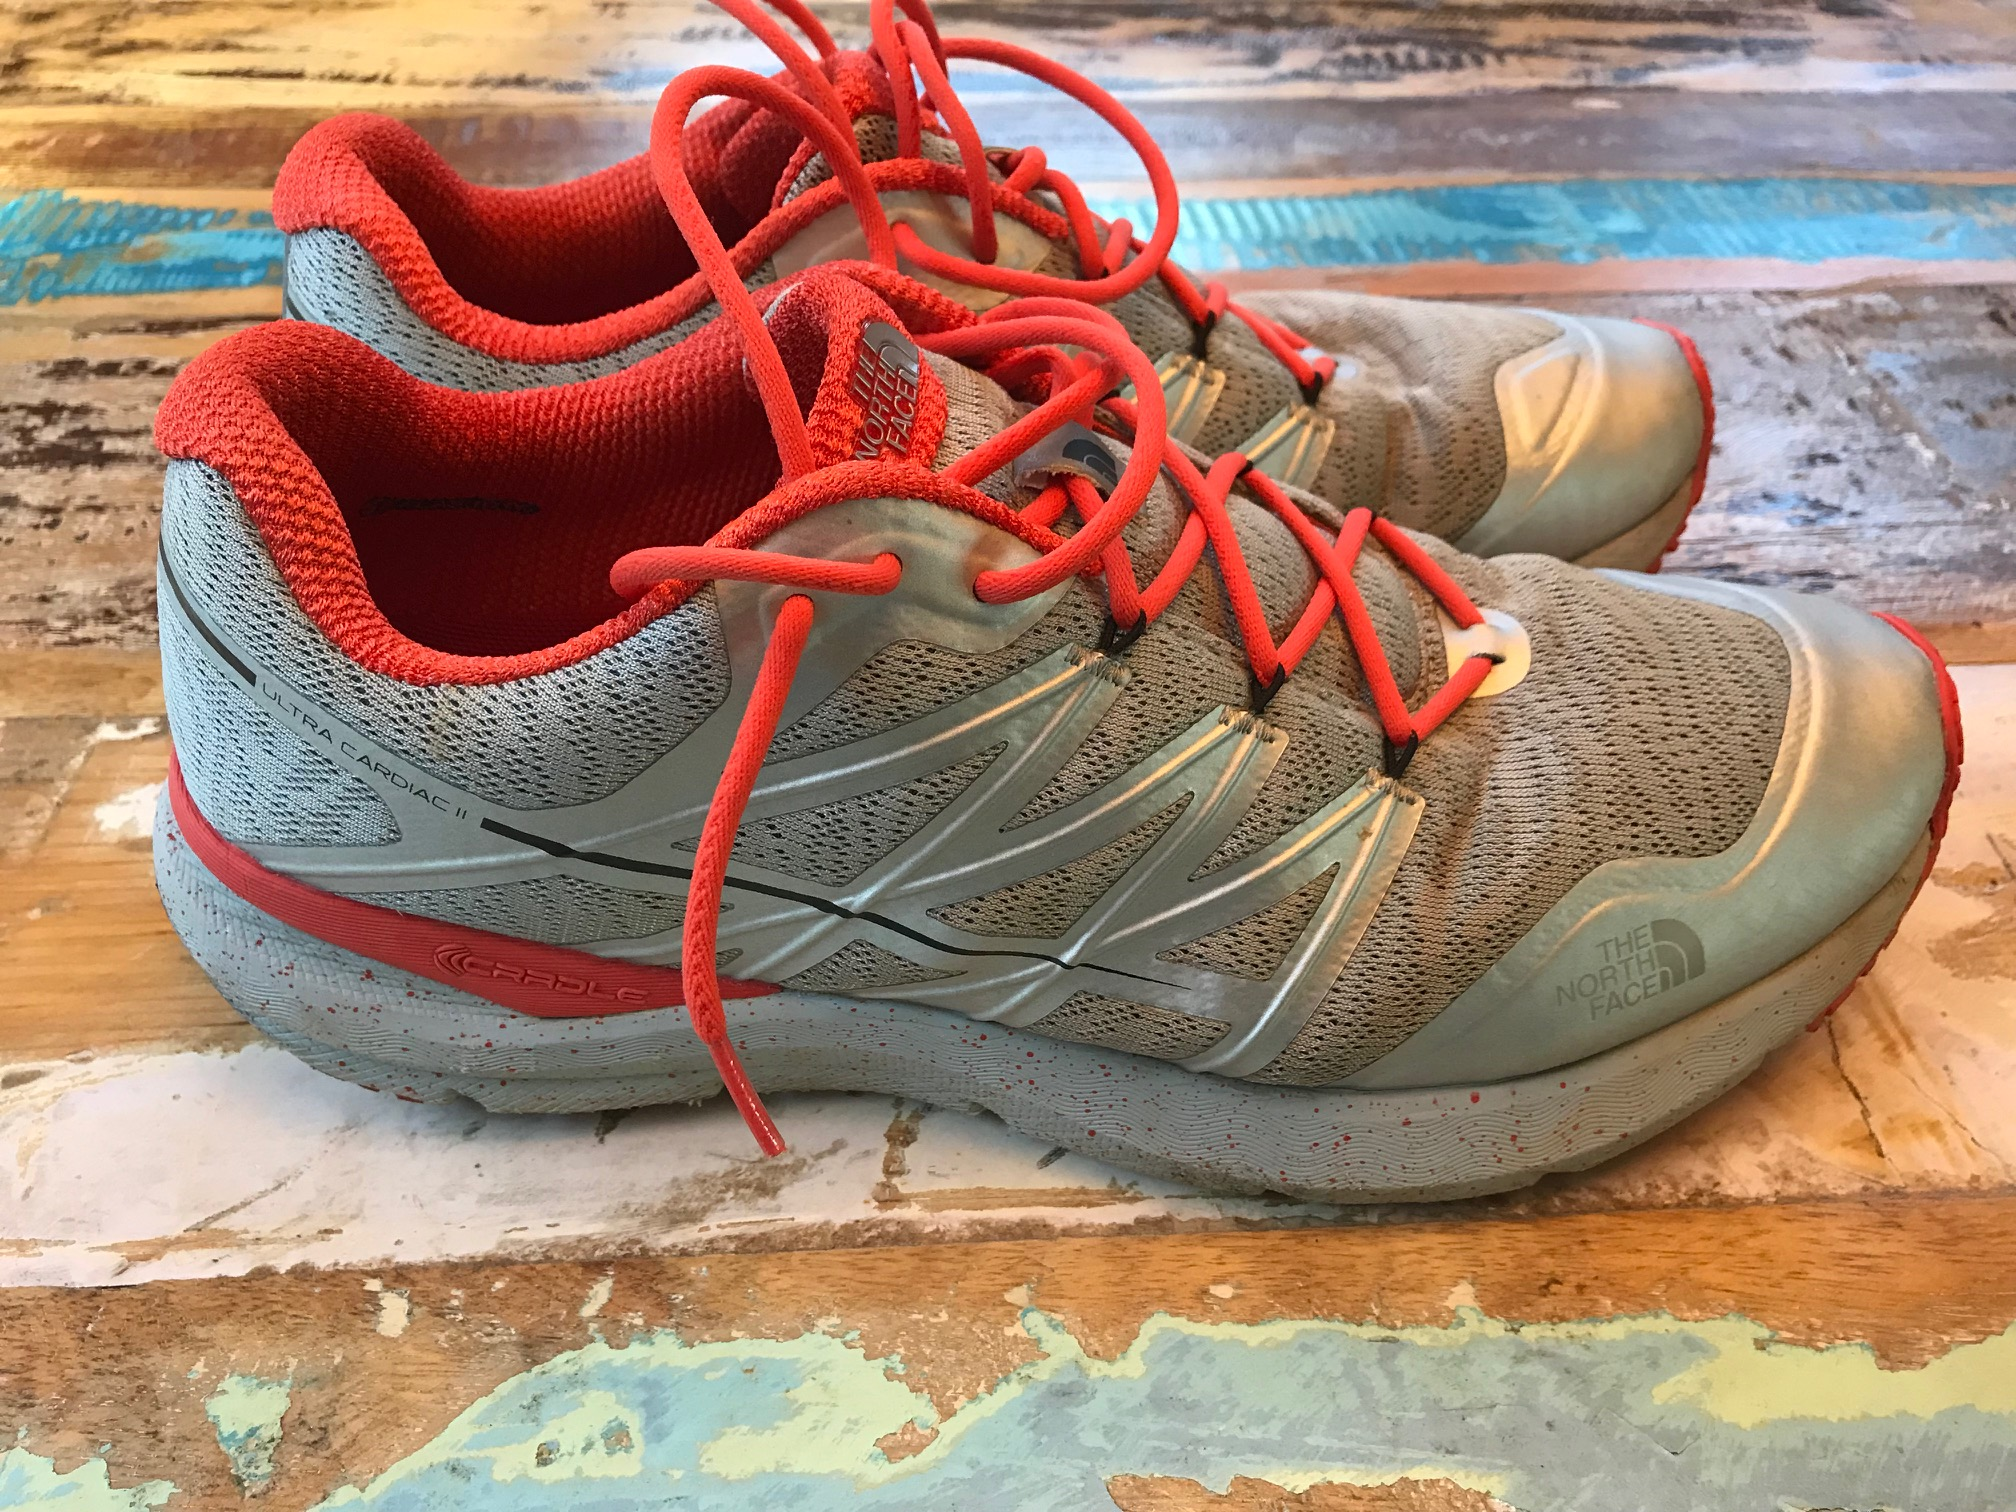 The North Face Ultra Cardiac II Review